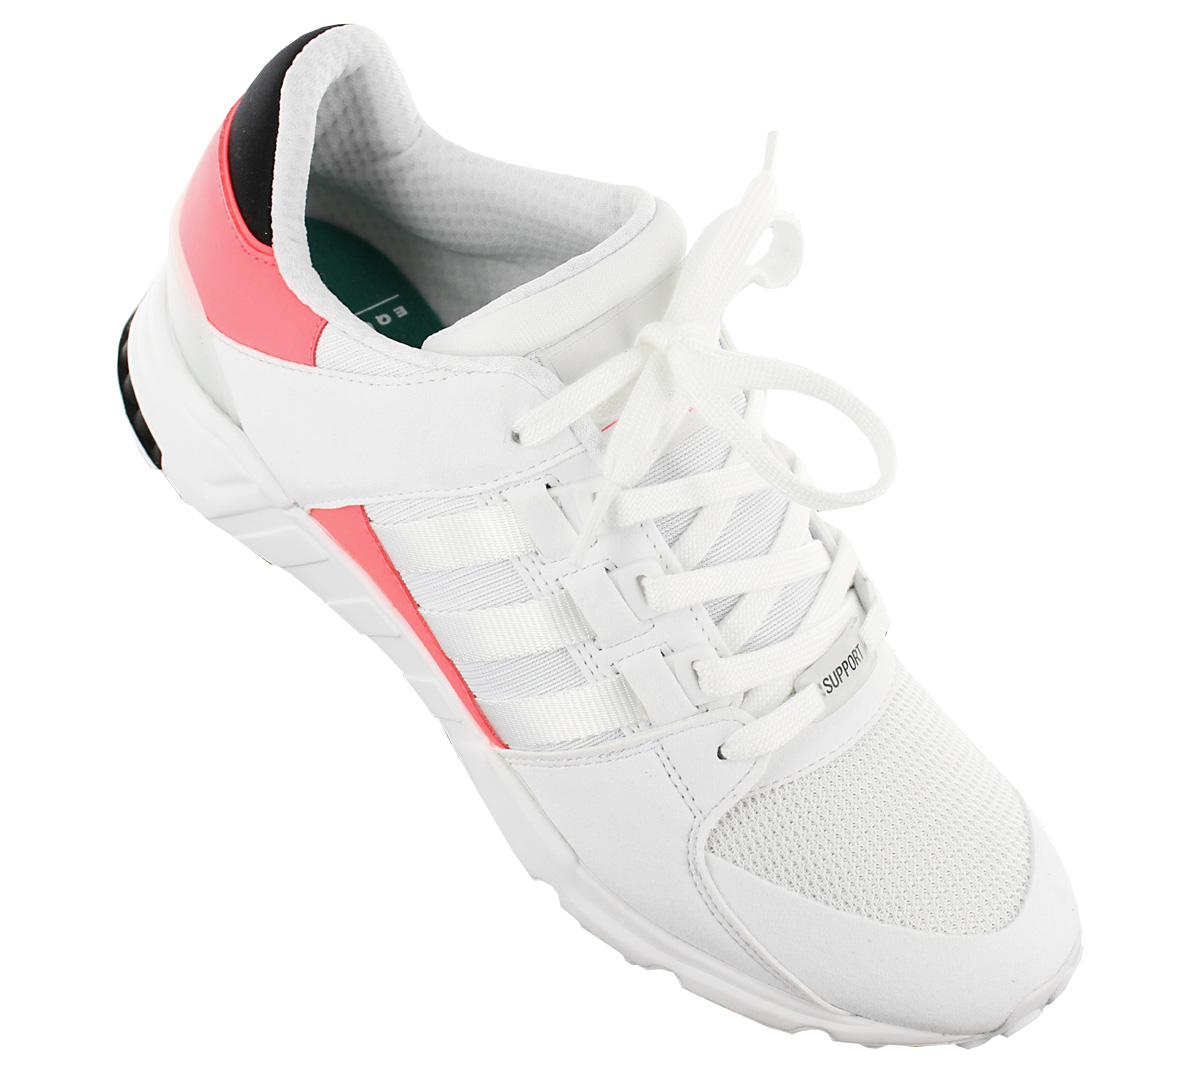 the best attitude 40a7d 0916a Image is loading NEW-adidas-EQT-Support-RF-BA7716-Men-039-